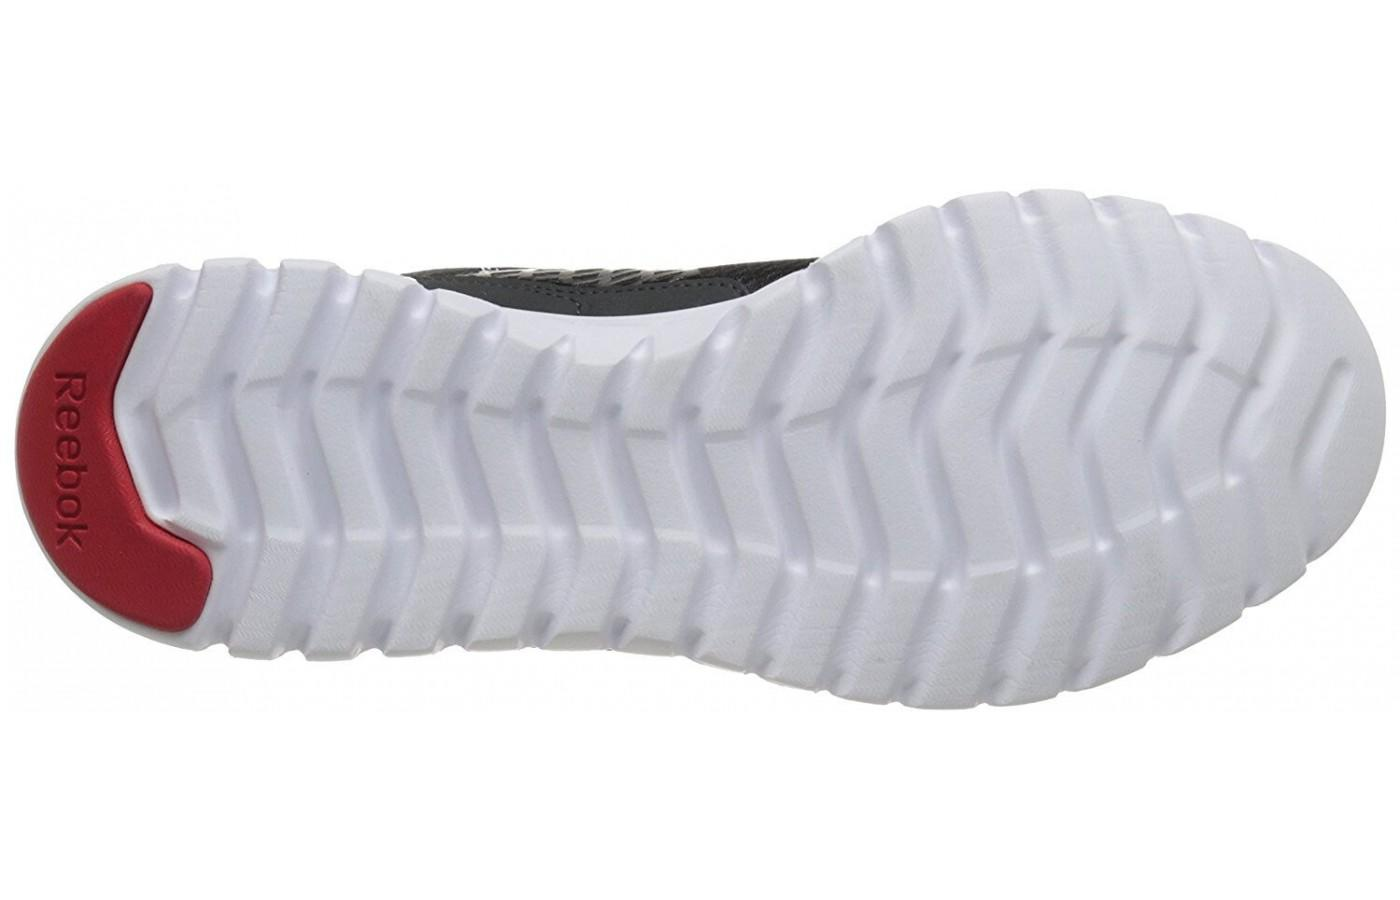 The outsole is designed with flex grooves that add flexibililty